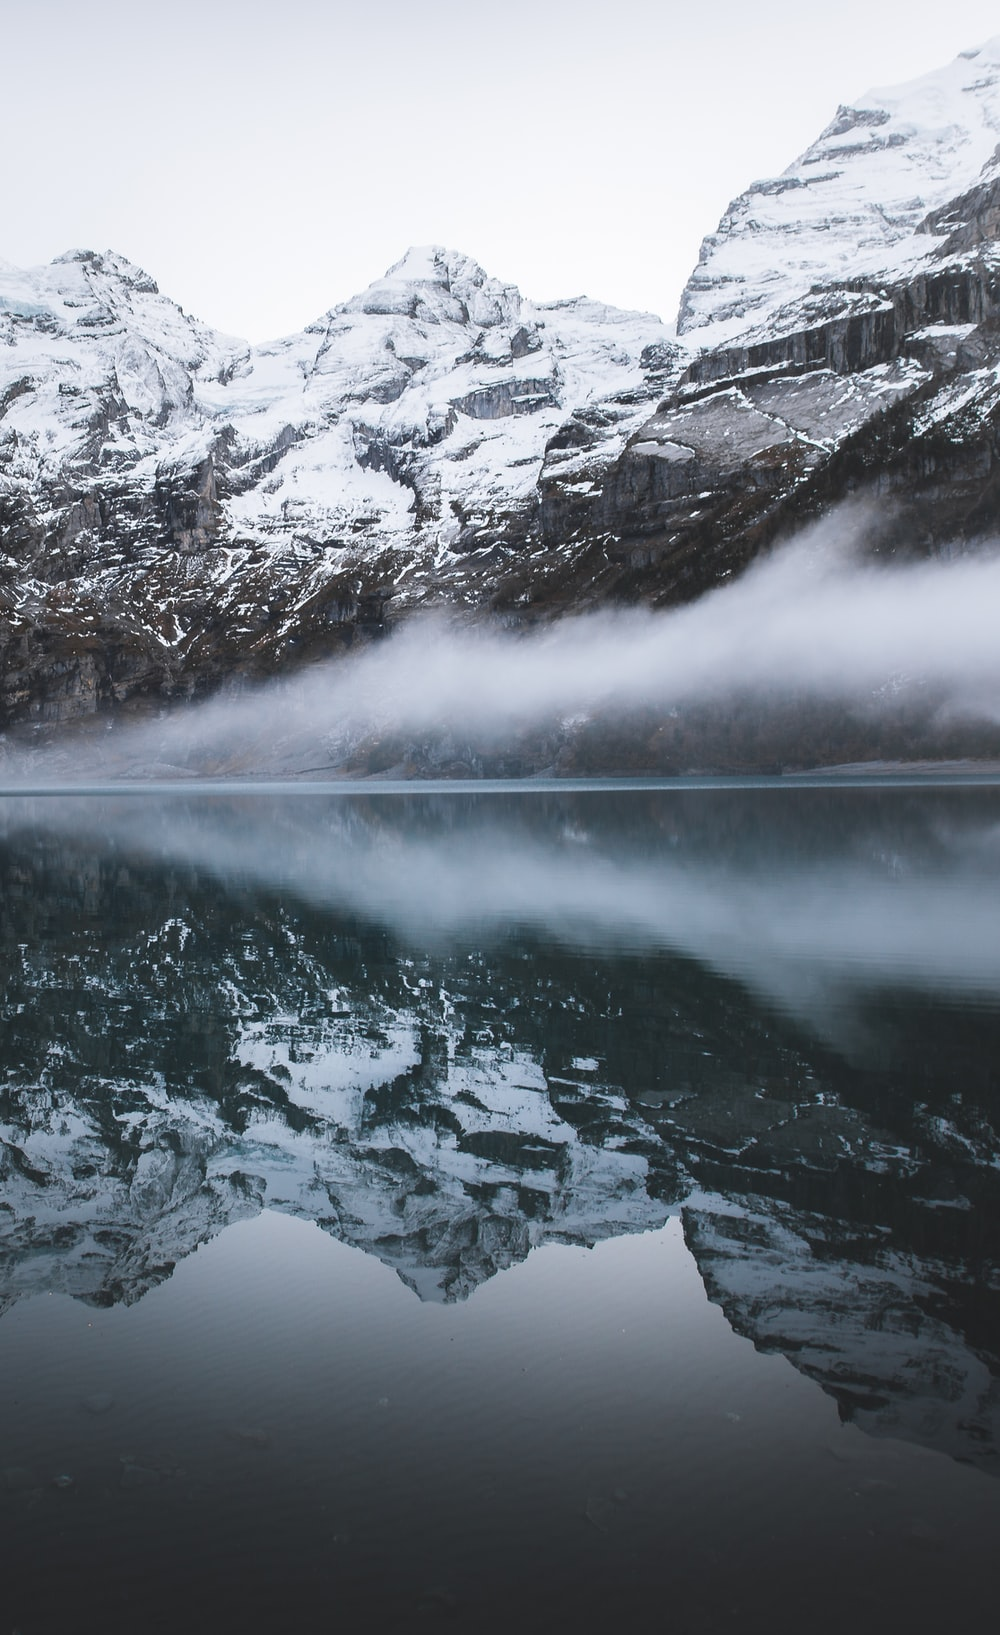 reflection photography of mountains